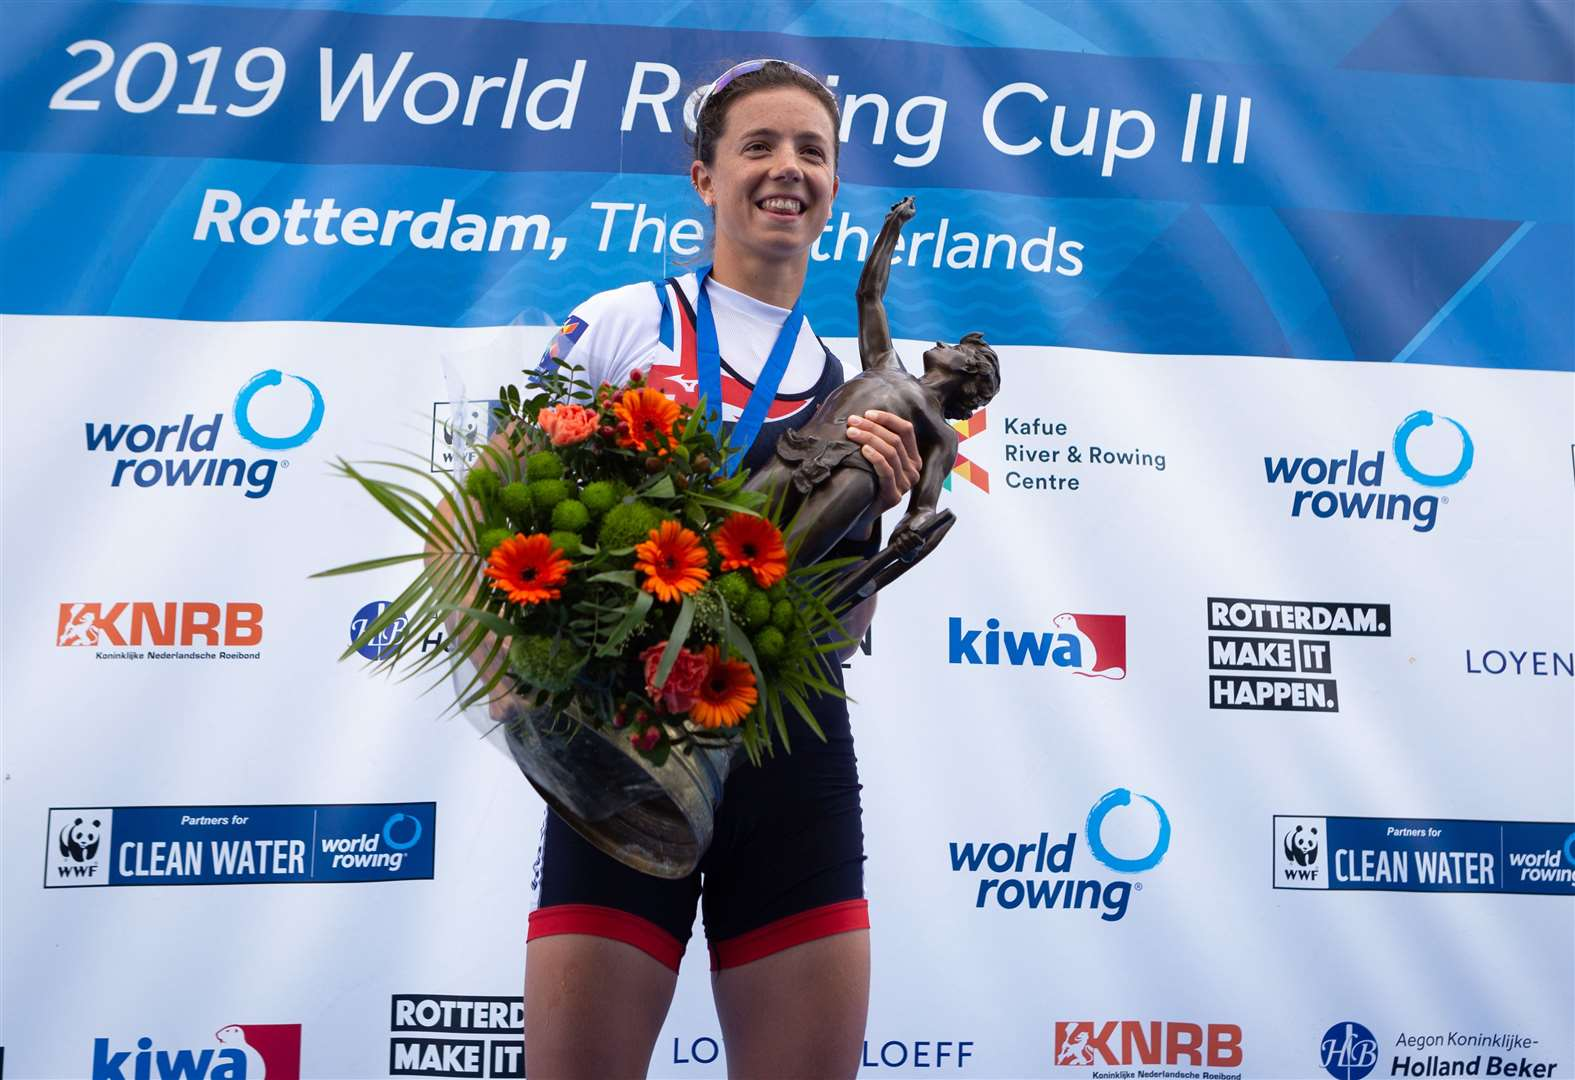 Cambridge University Women's Boat Club's Imogen Grant is chosen as World Rowing's rising star of the month